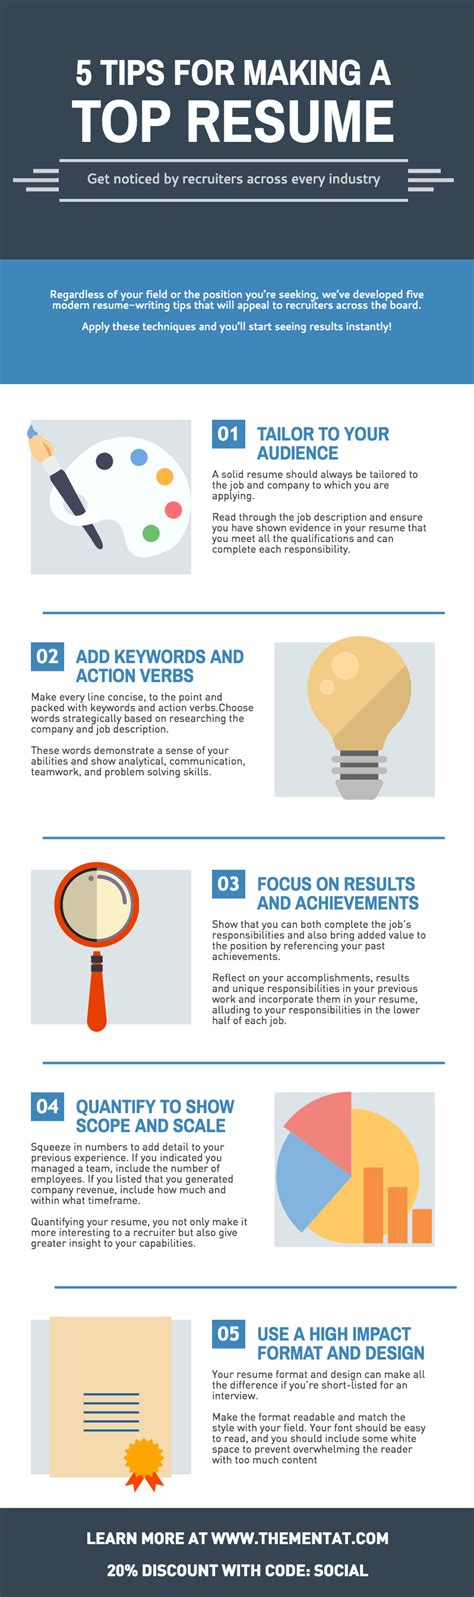 5 tips for a top resume top infographic